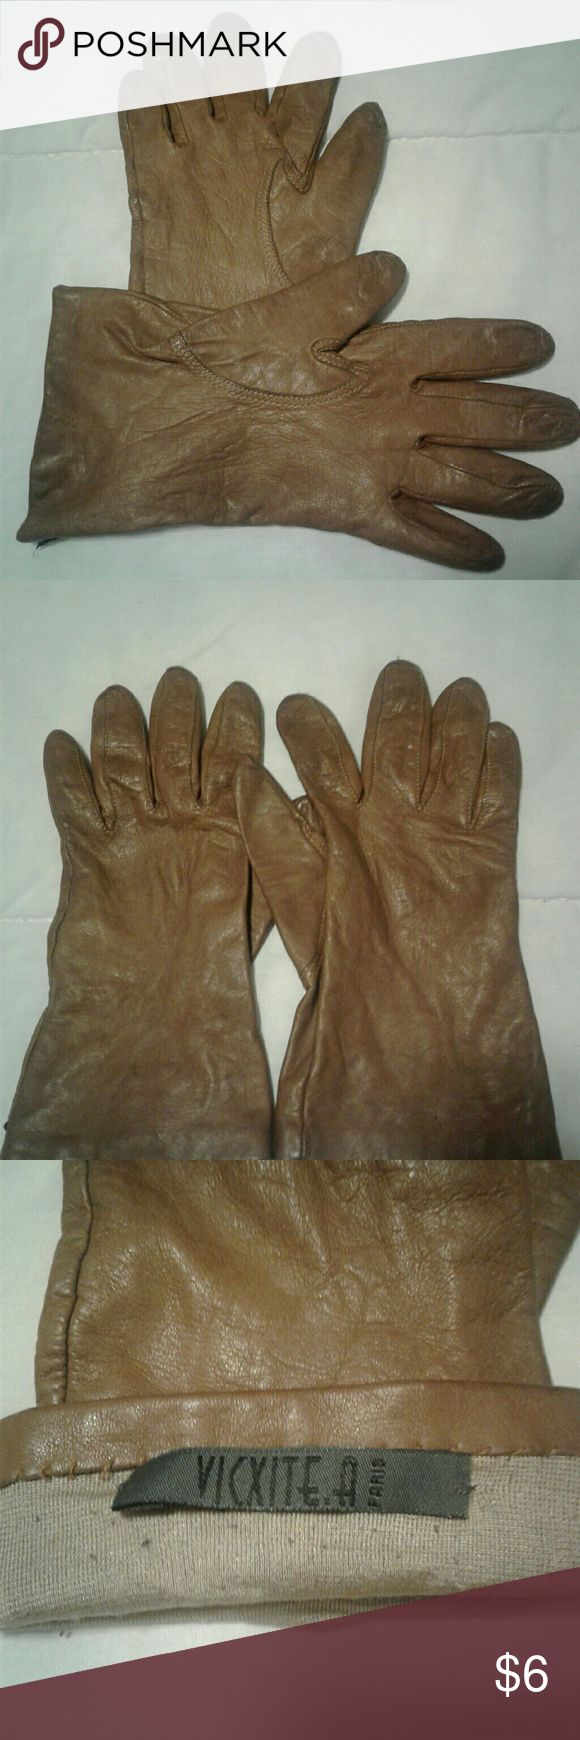 Very mens gloves - Vintage Women S Brown Leather Gloves Size 7